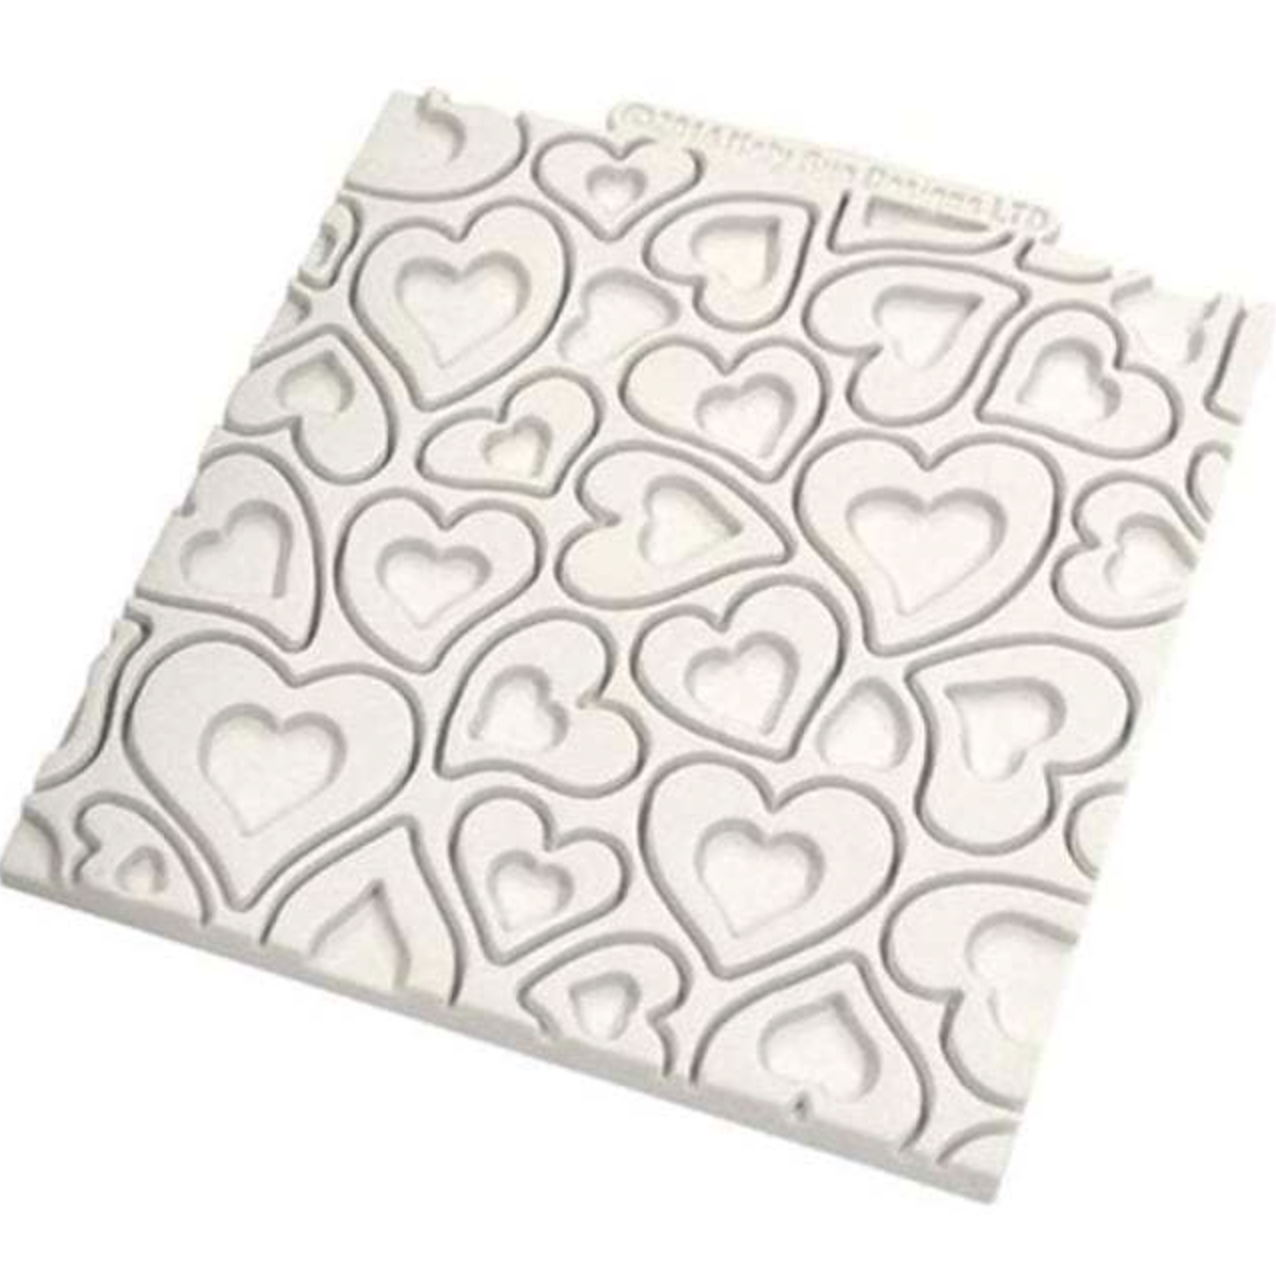 Katy Sue HEARTS Design Mat Silicone Sugarcraft Mould - Valentine - Love - Ratton Pantry